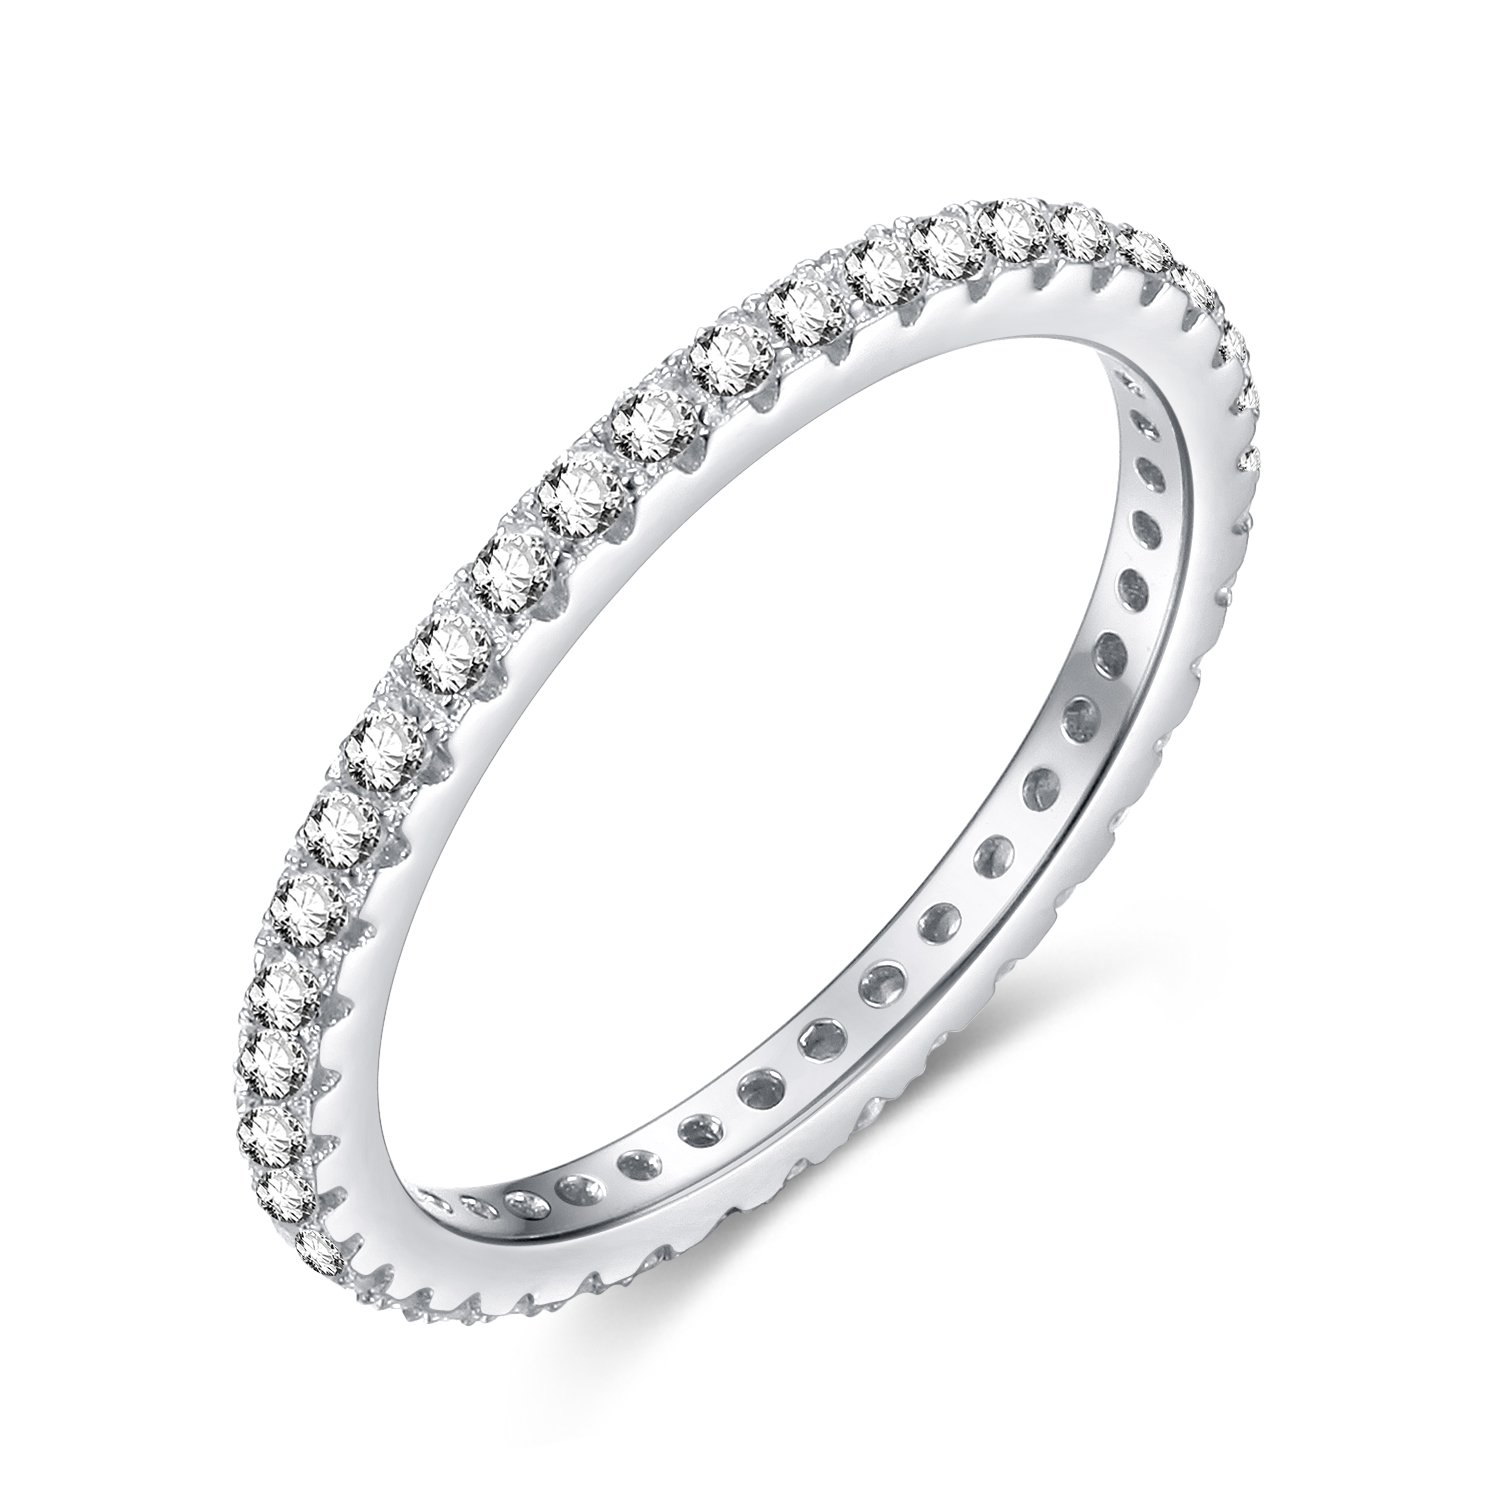 EAMTI 925 Sterling Silver Wedding Band Cubic Zirconia Stackable Eternity Engagement Ring Size 5.5